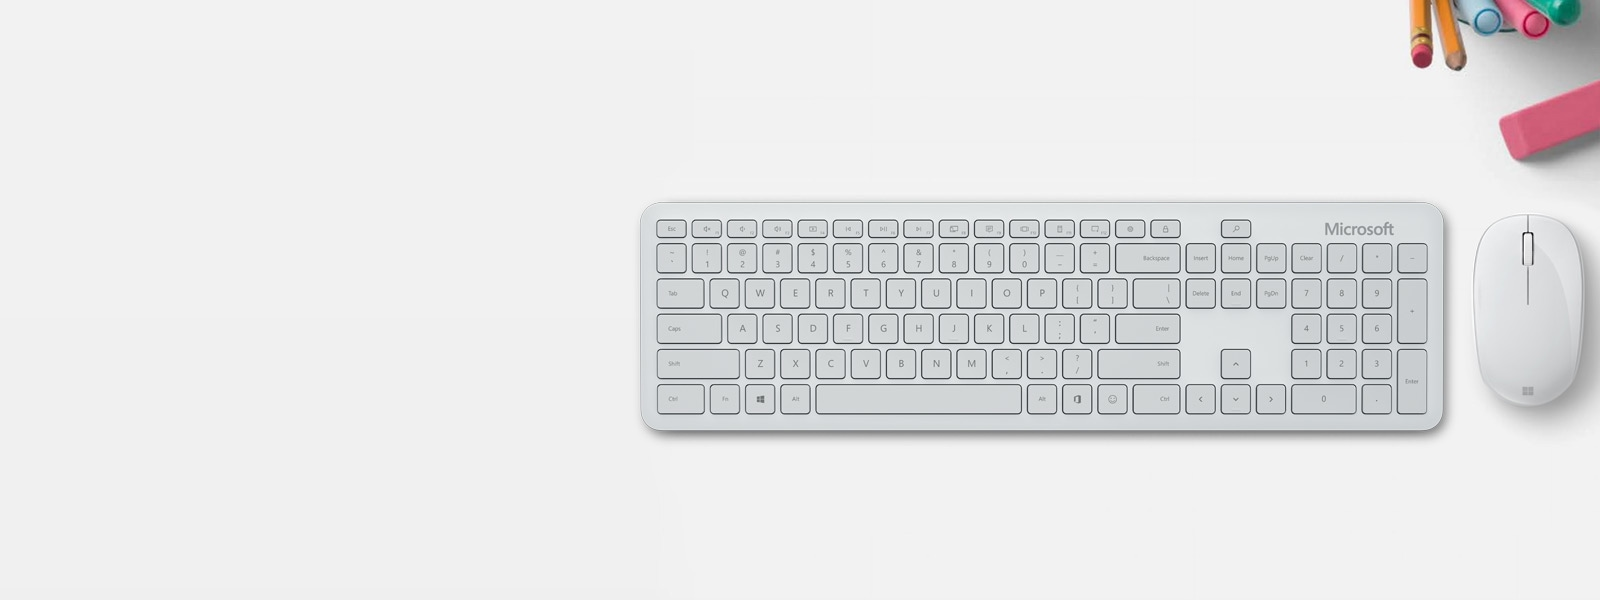 Microsoft Bluetooth Keyboard е поставена до Microsoft Bluetooth Mouse на бюро с писалка, маркер и гума